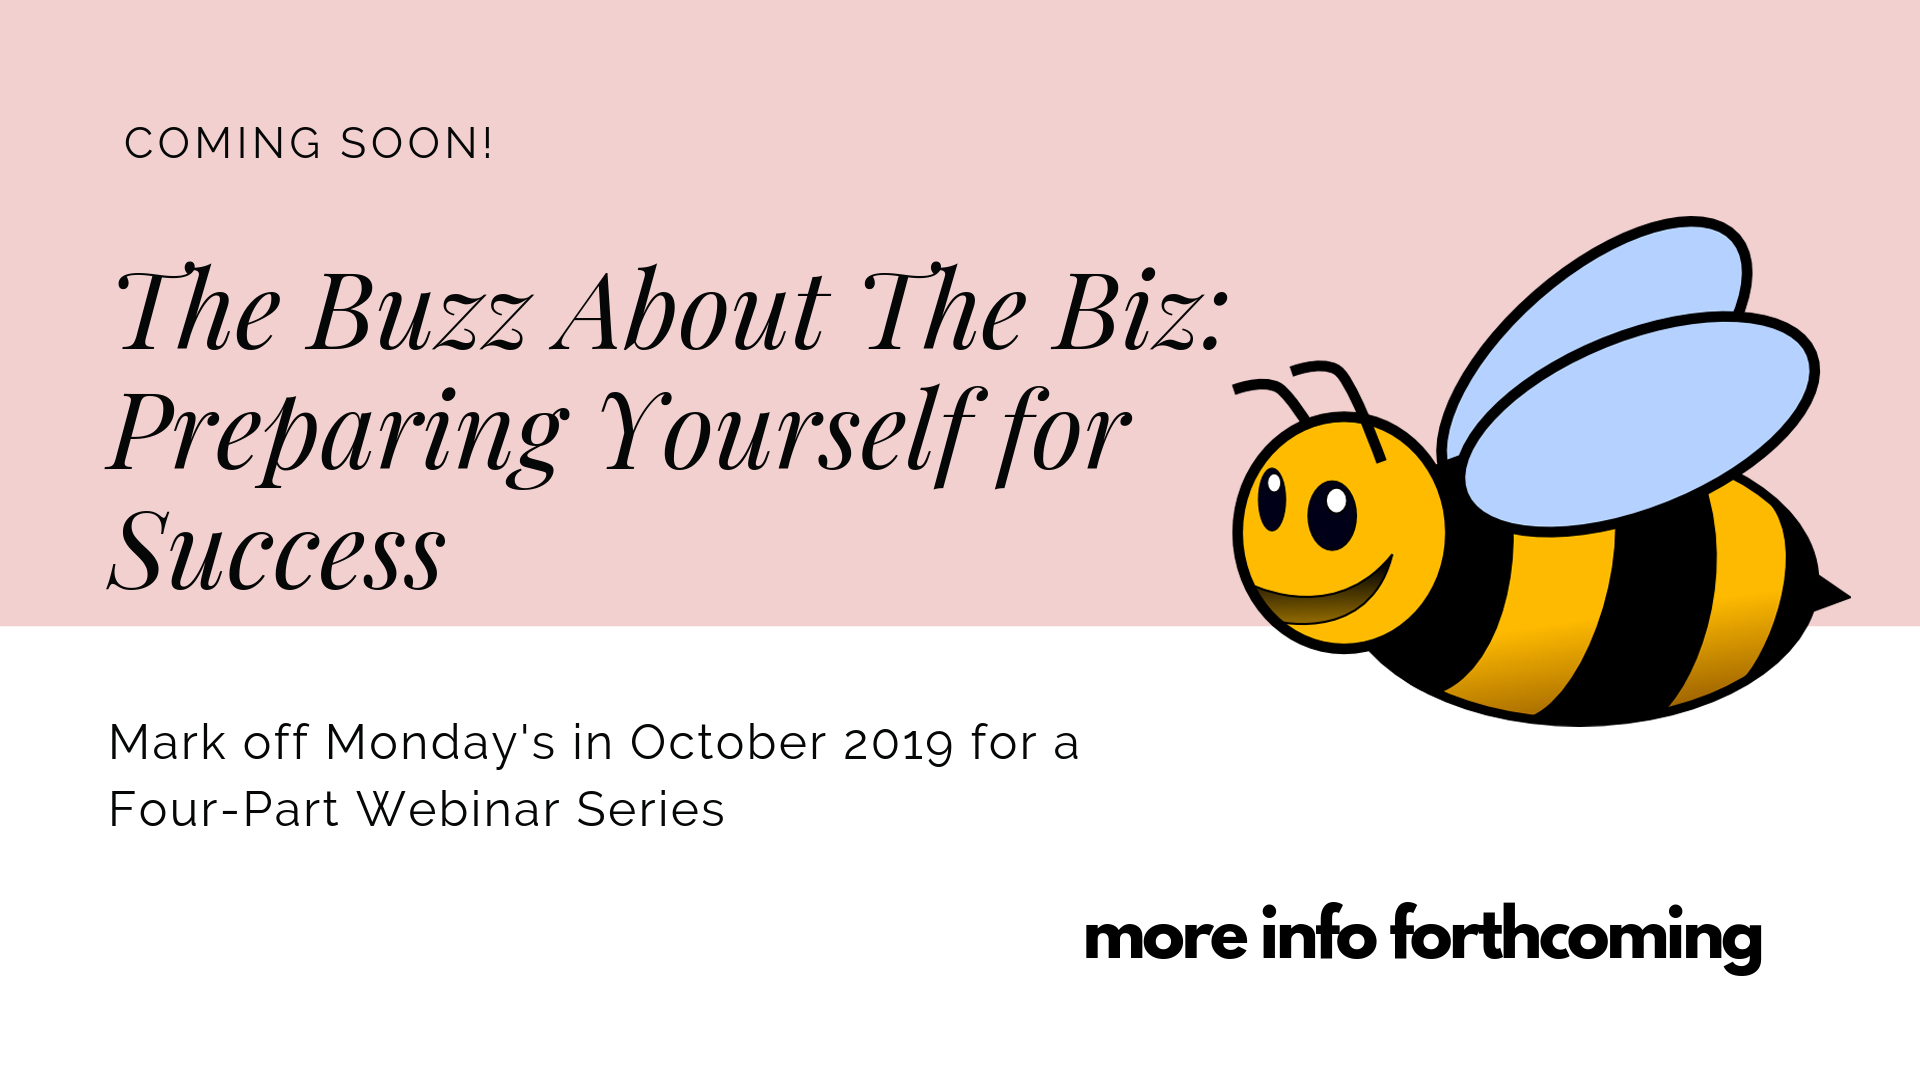 Mark off Mondays in October 2019 for a Four-Part Webinar Series The Buzz About the Biz: Preparing Yourself for Success Four webinars plus Q&A held live on Monday nights and taped for later viewing. Stay tuned for more Buzz!